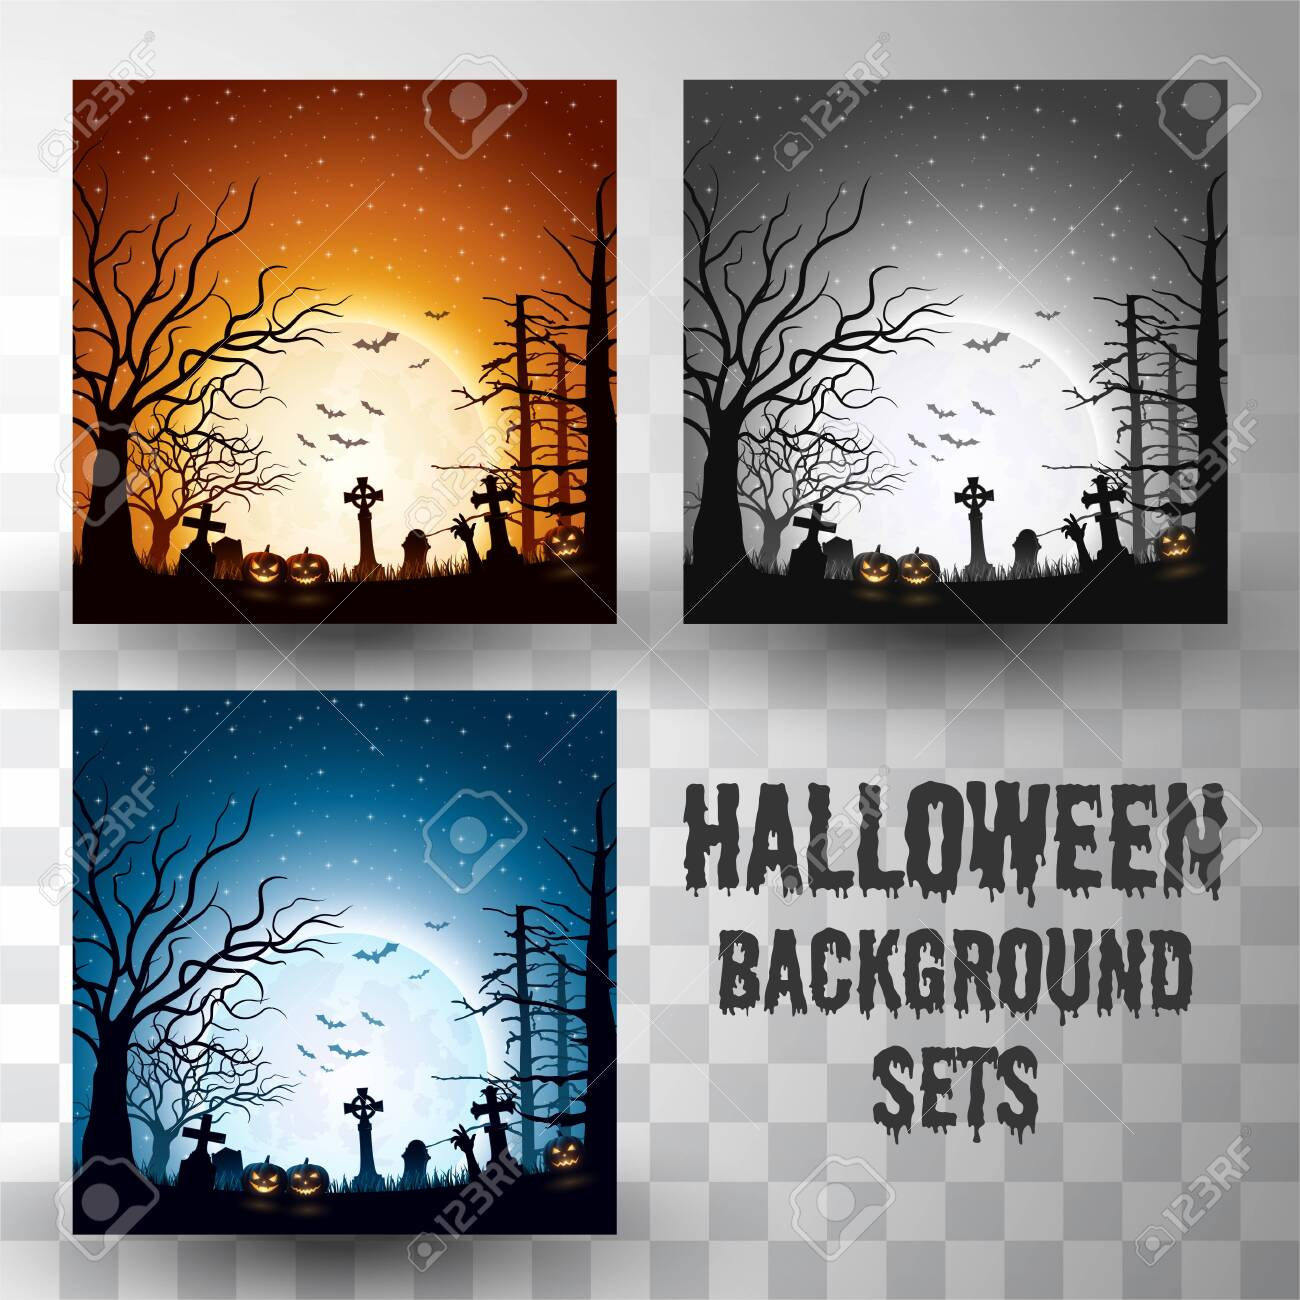 Halloween silhouette background sets with different colour scene - 129794128